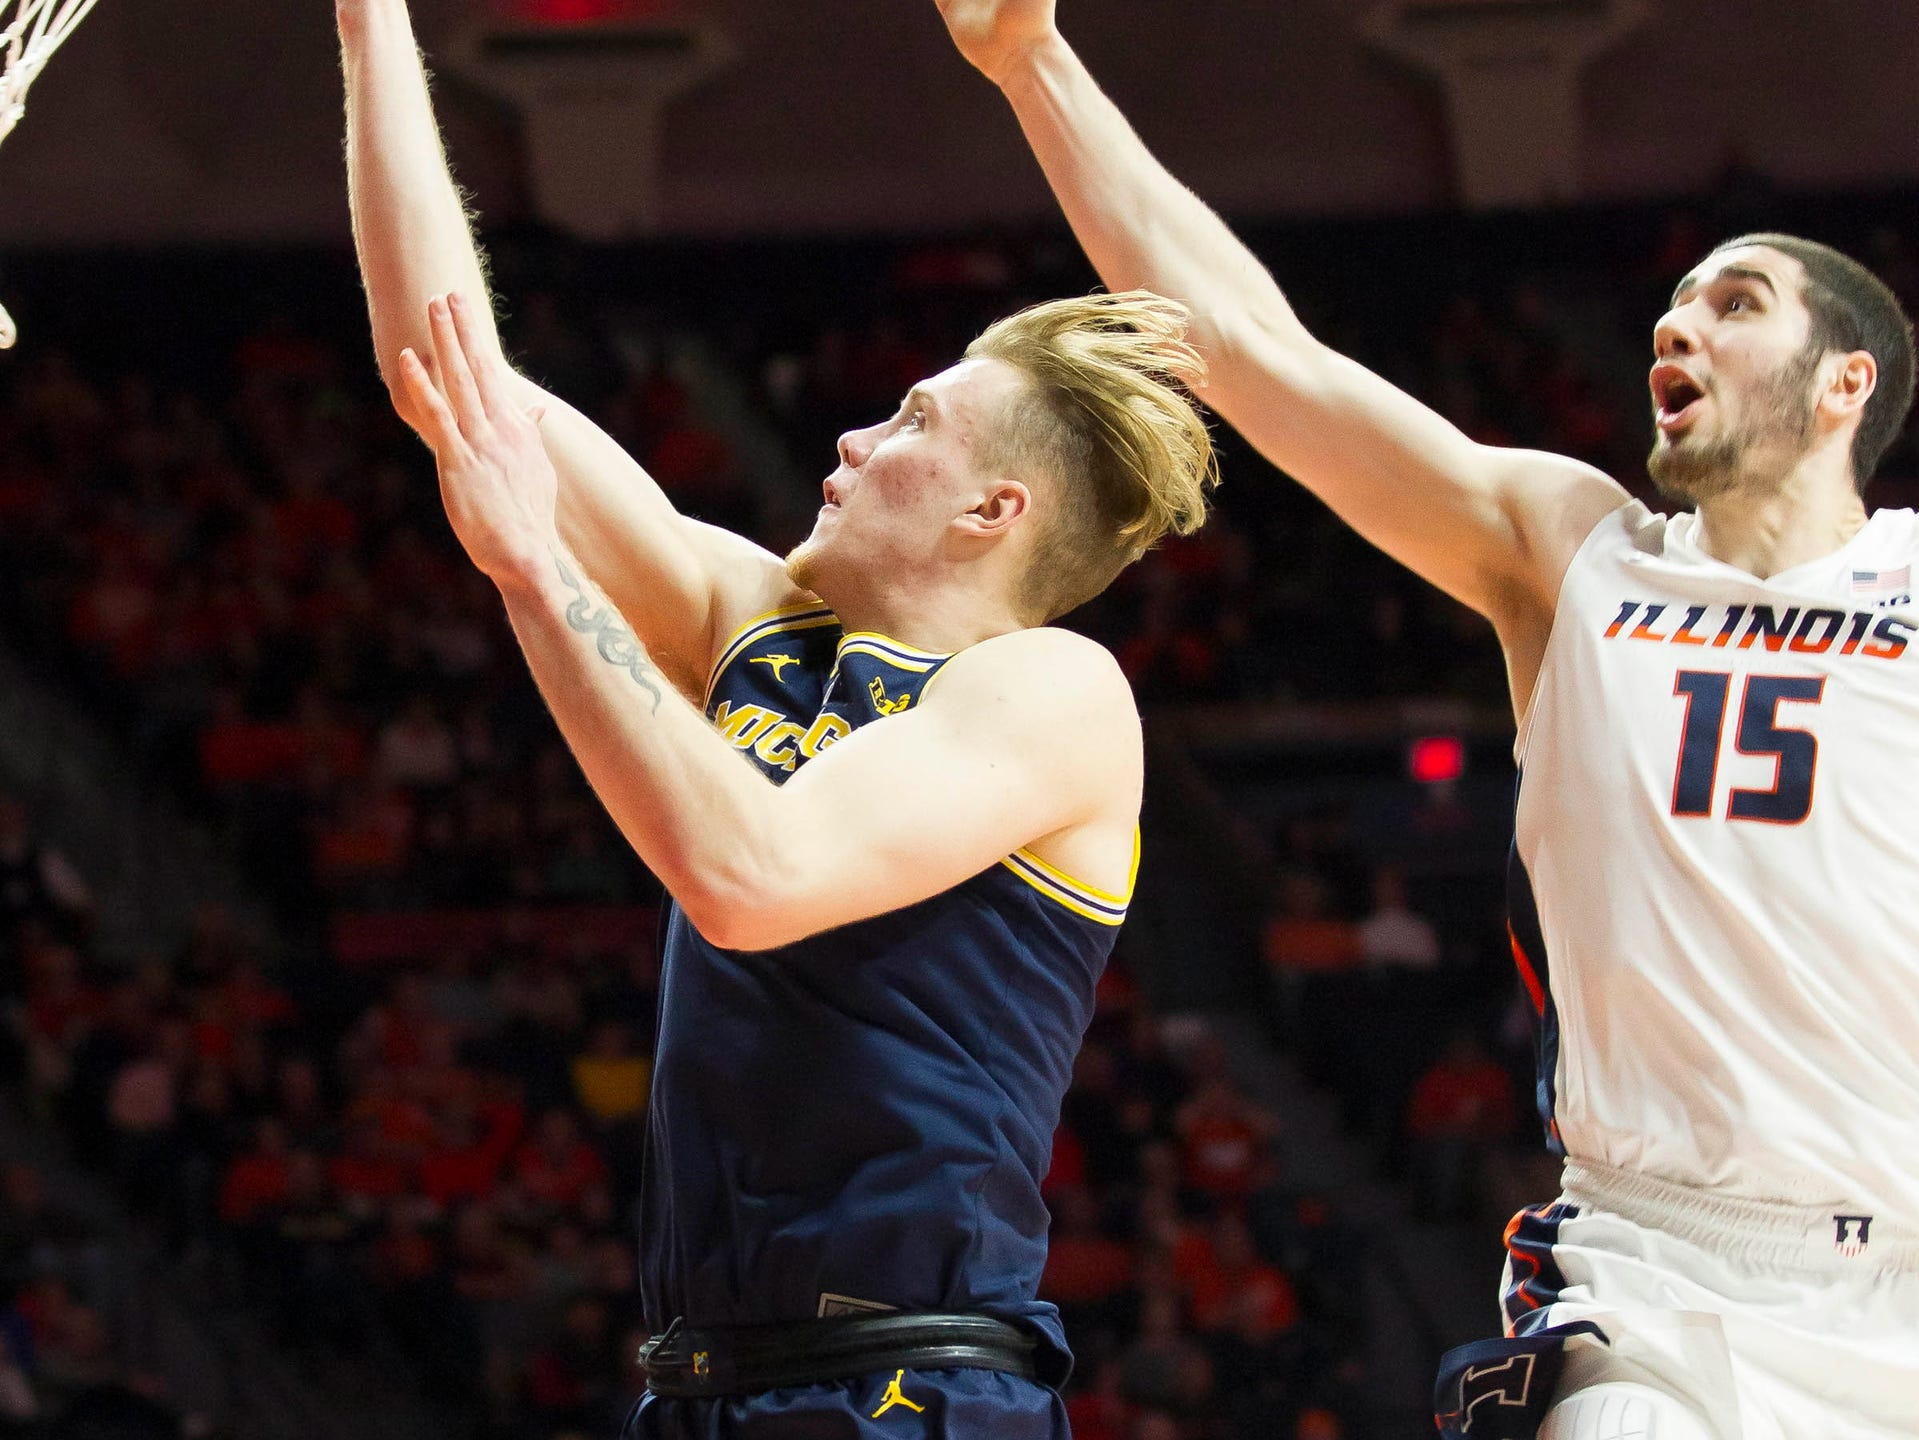 Michigan forward Ignas Brazdeikis shoots defended by Illinois forward Giorgi Bezhanishvili during the second half of U-M's 79-69 win on Thursday, Jan. 10, 2019, in Champaign, Ill.